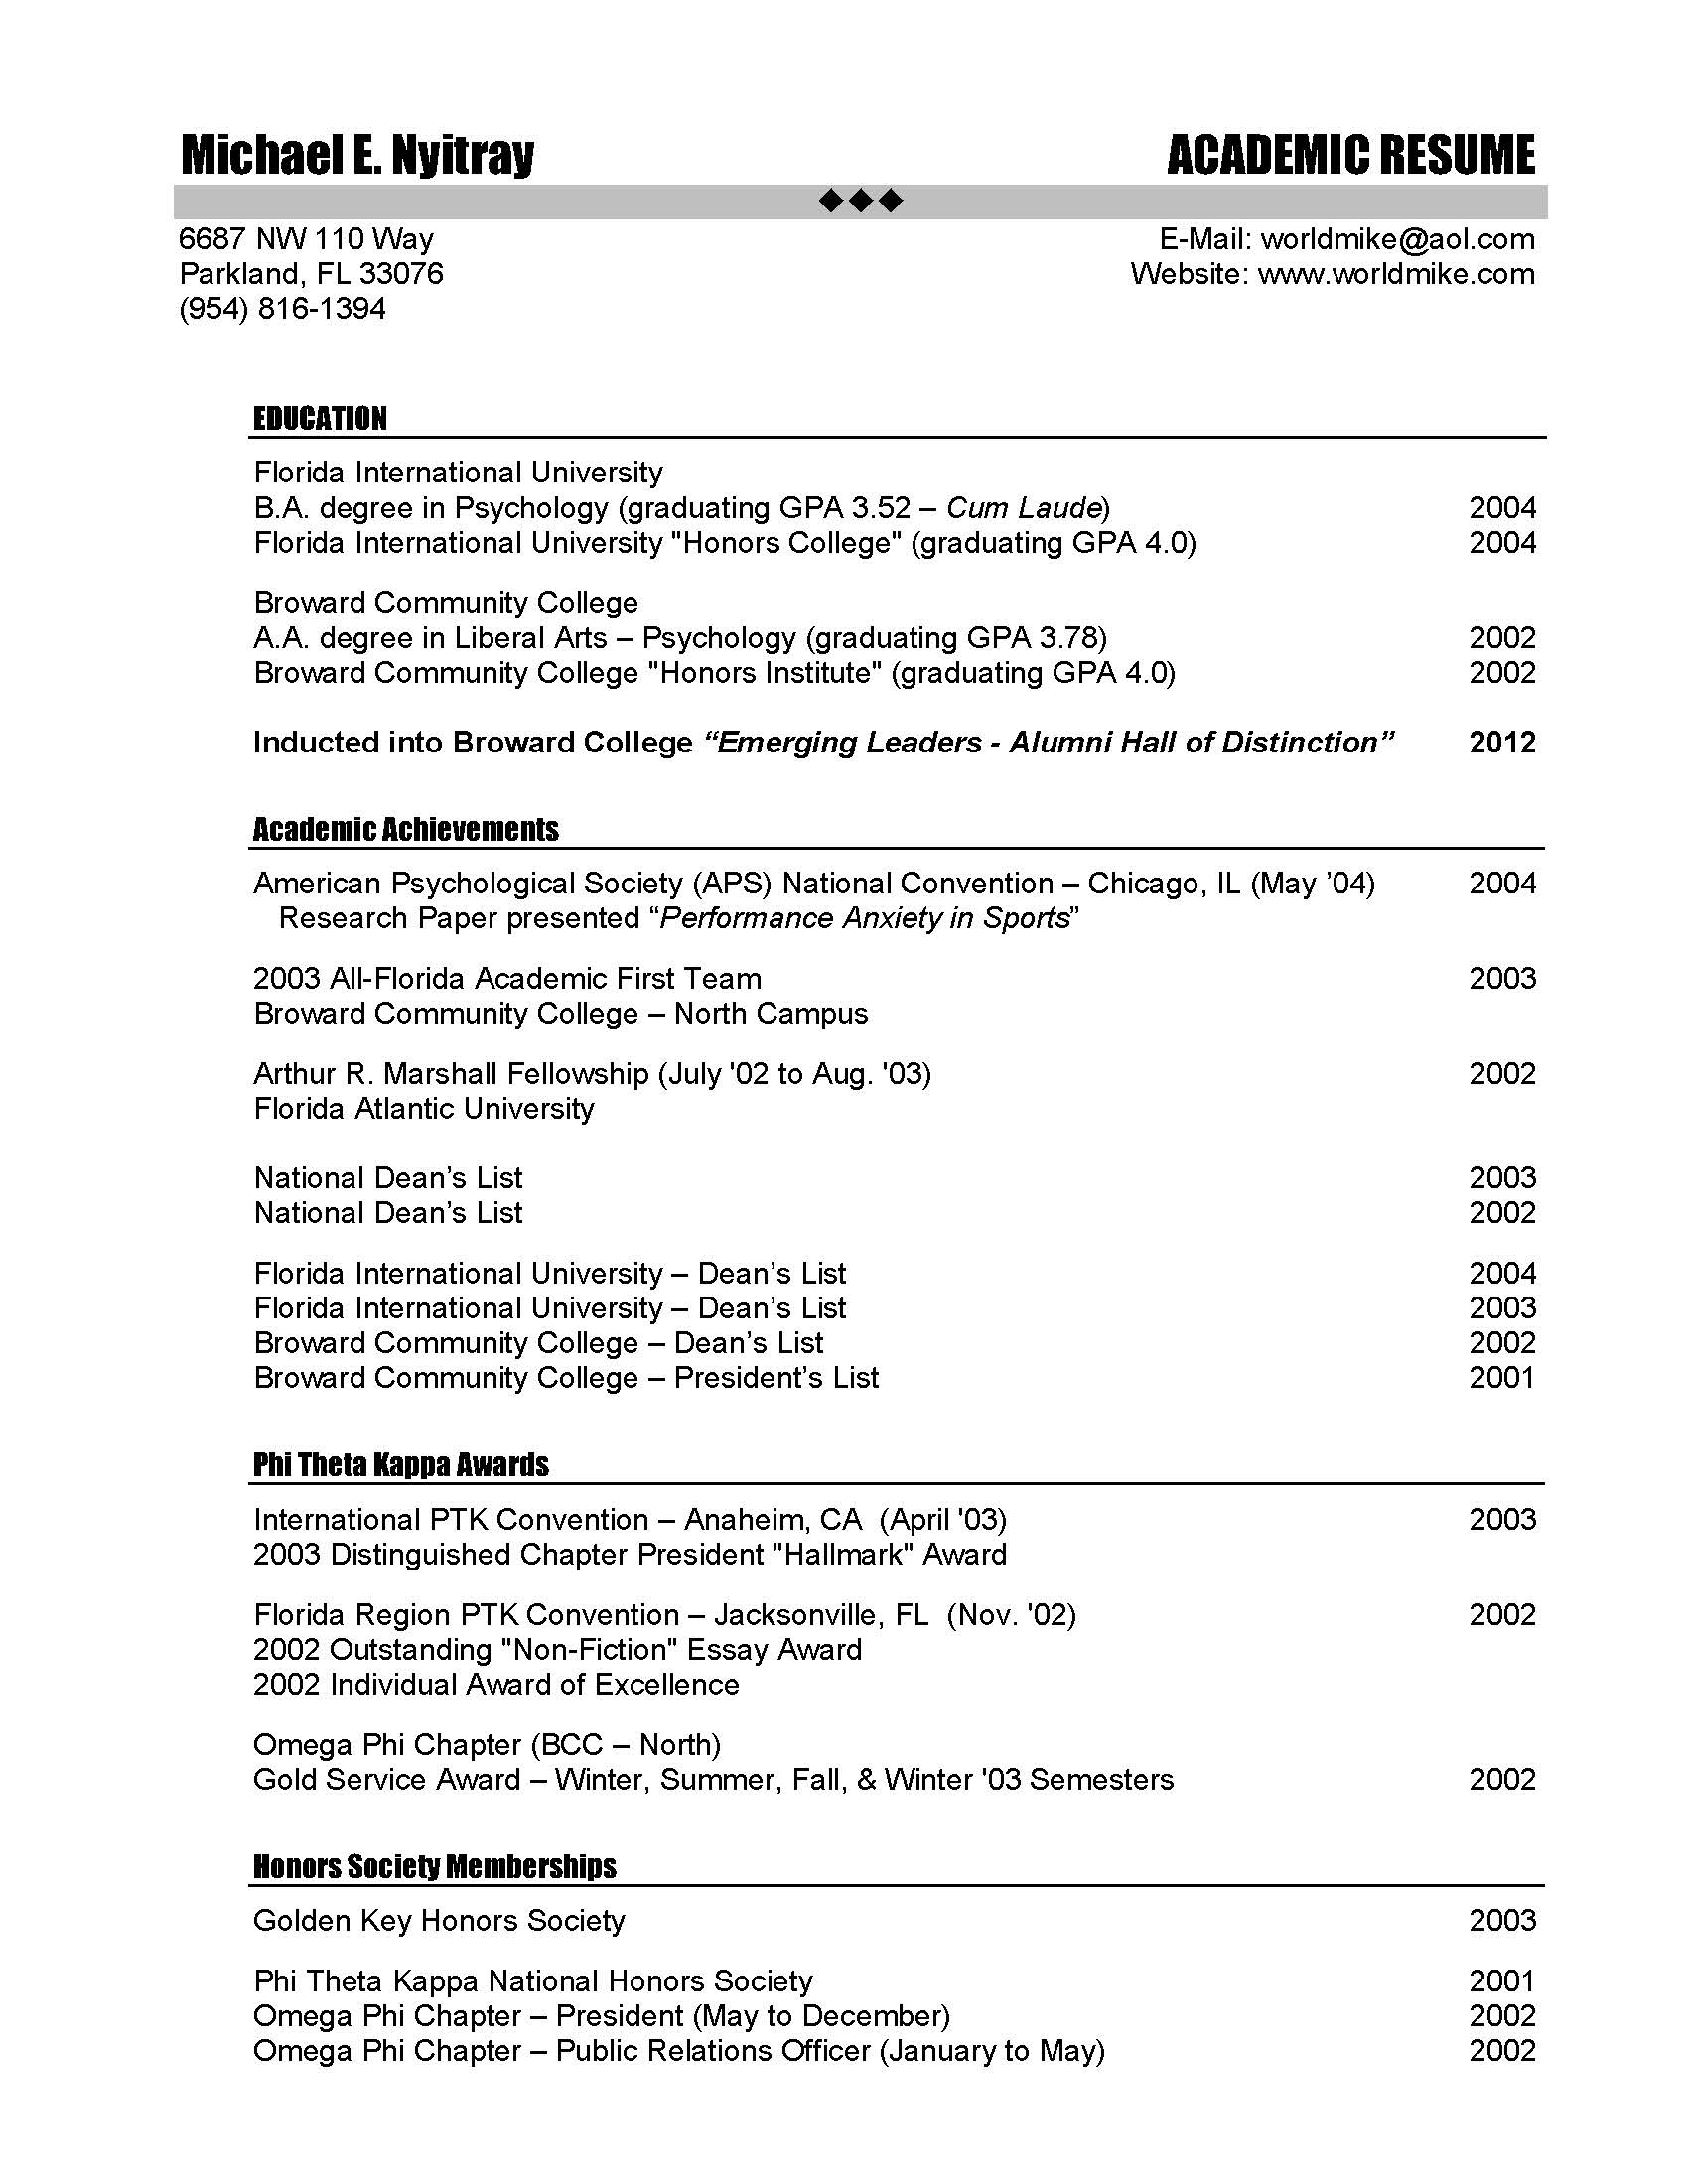 Academic Resume Help Academic Resume Builder. Volumetrics.co